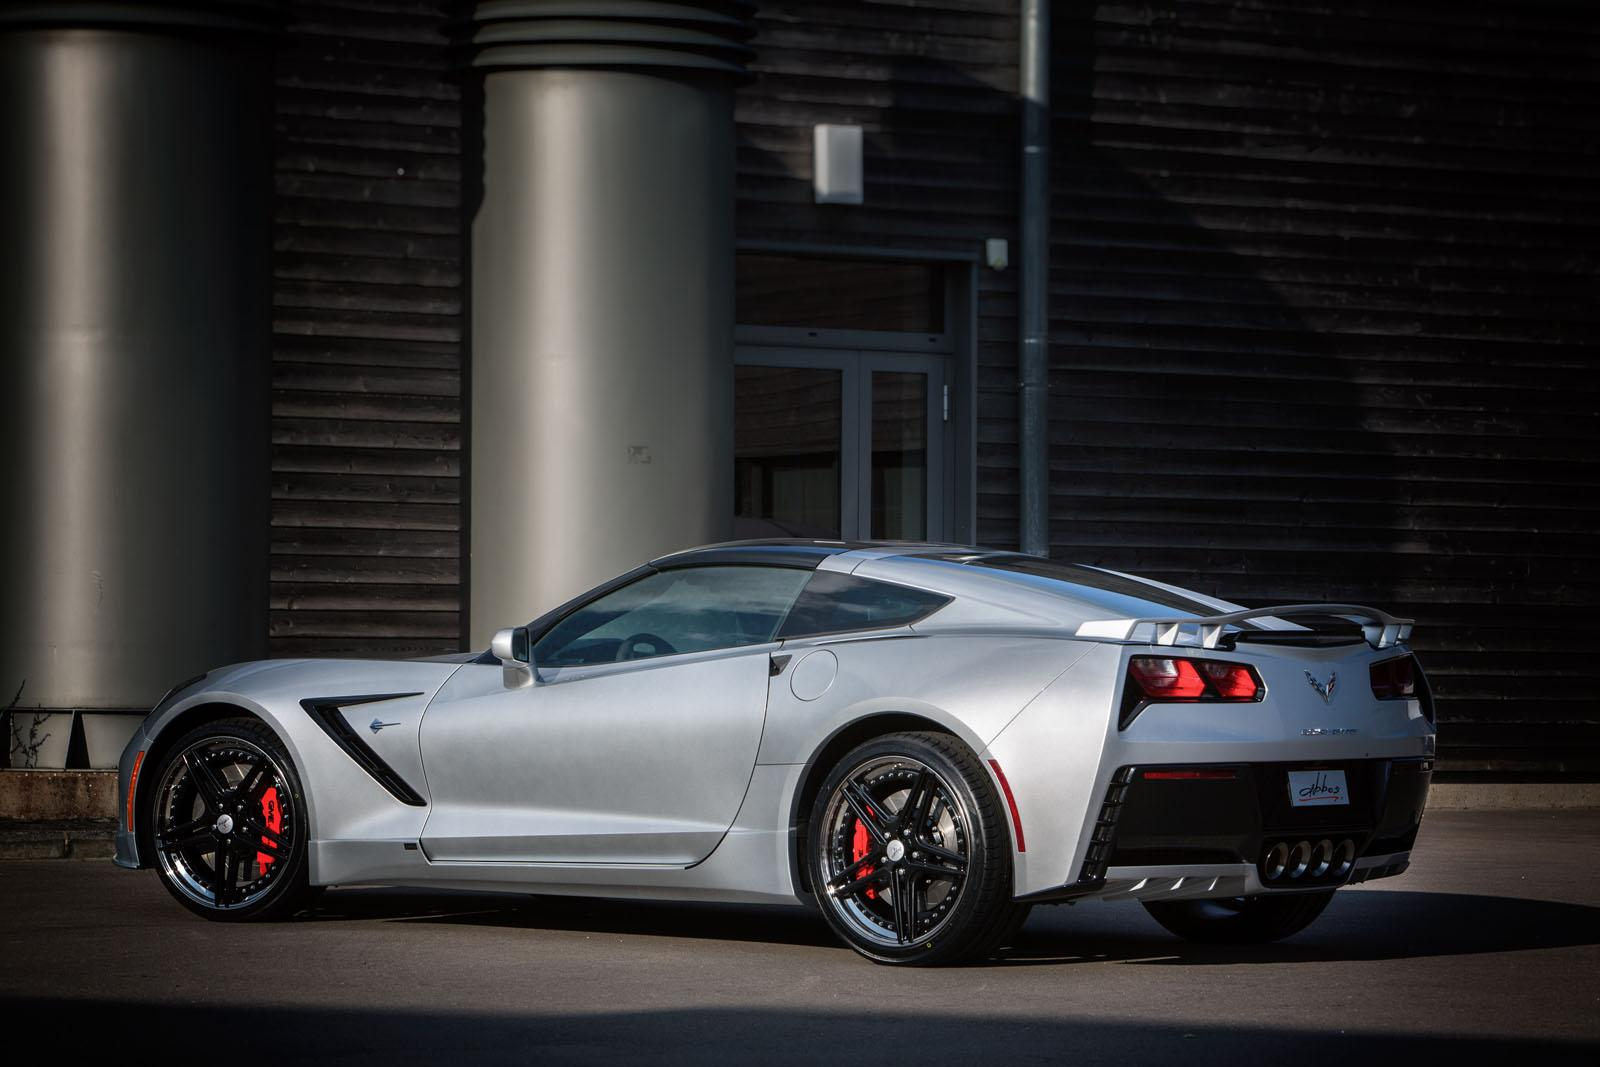 C7 Corvette Stingray Supercharged by Abbes Design - autoevolution